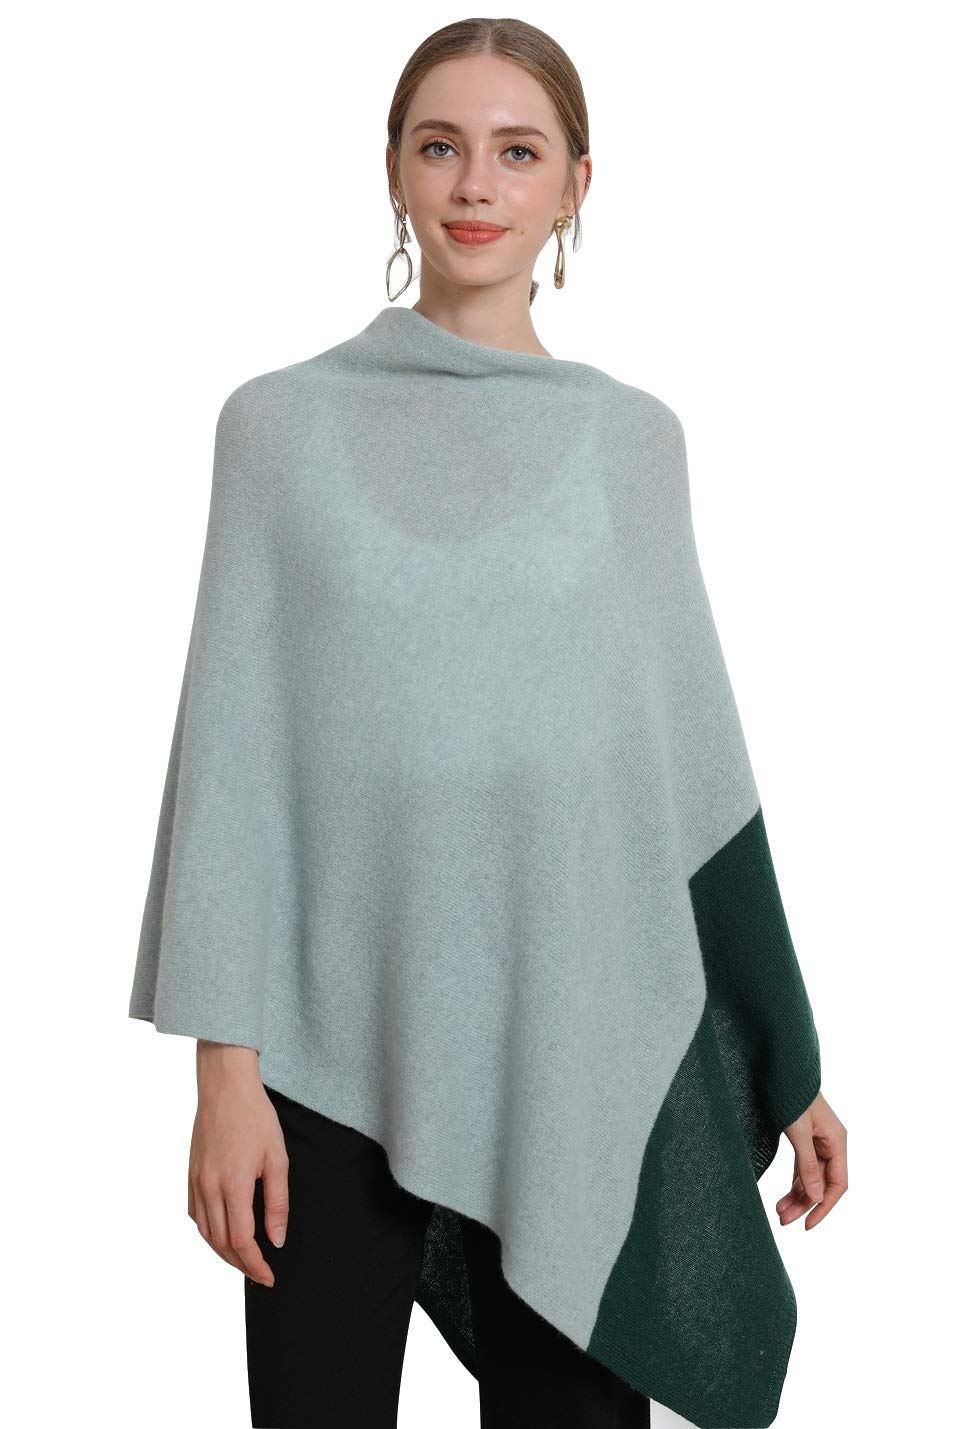 winter wedding wrap knitted poncho Women's hit color Wraps Scarves Cashmere wool Knit Cowl neck Sweater Wrap Oversized Poncho(Dark Green+Light Green) by RanRui